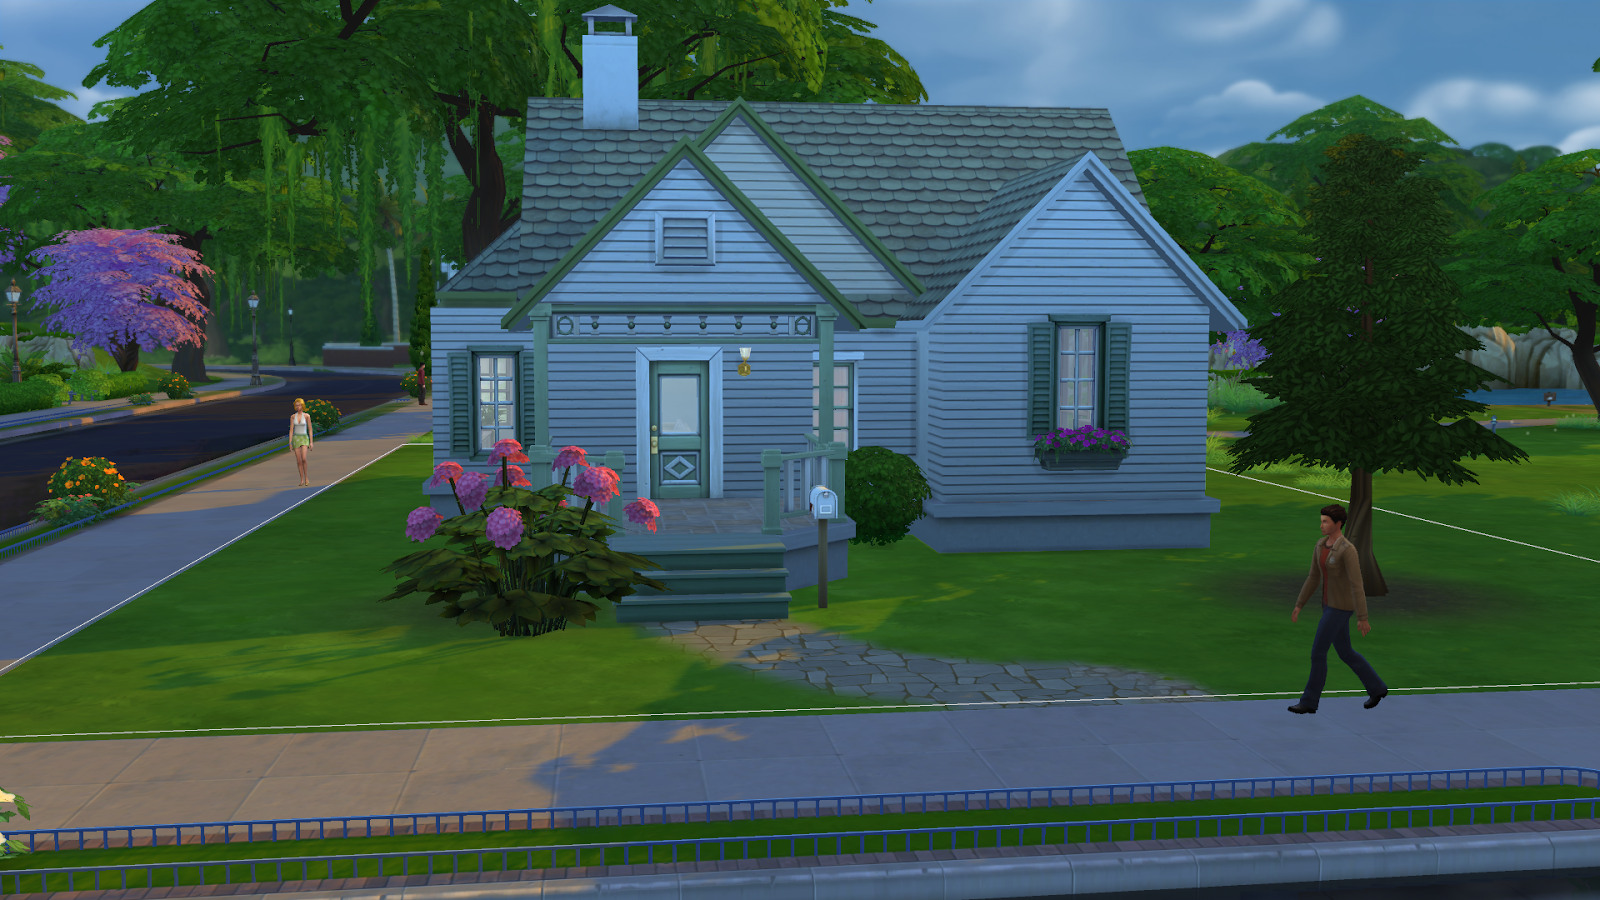 Every Sim Needs A Good Place To Startd This Little Cottage Has  Everything They Need Including Plenty Of Space And A Price Tag A Single Sim  Can Afford